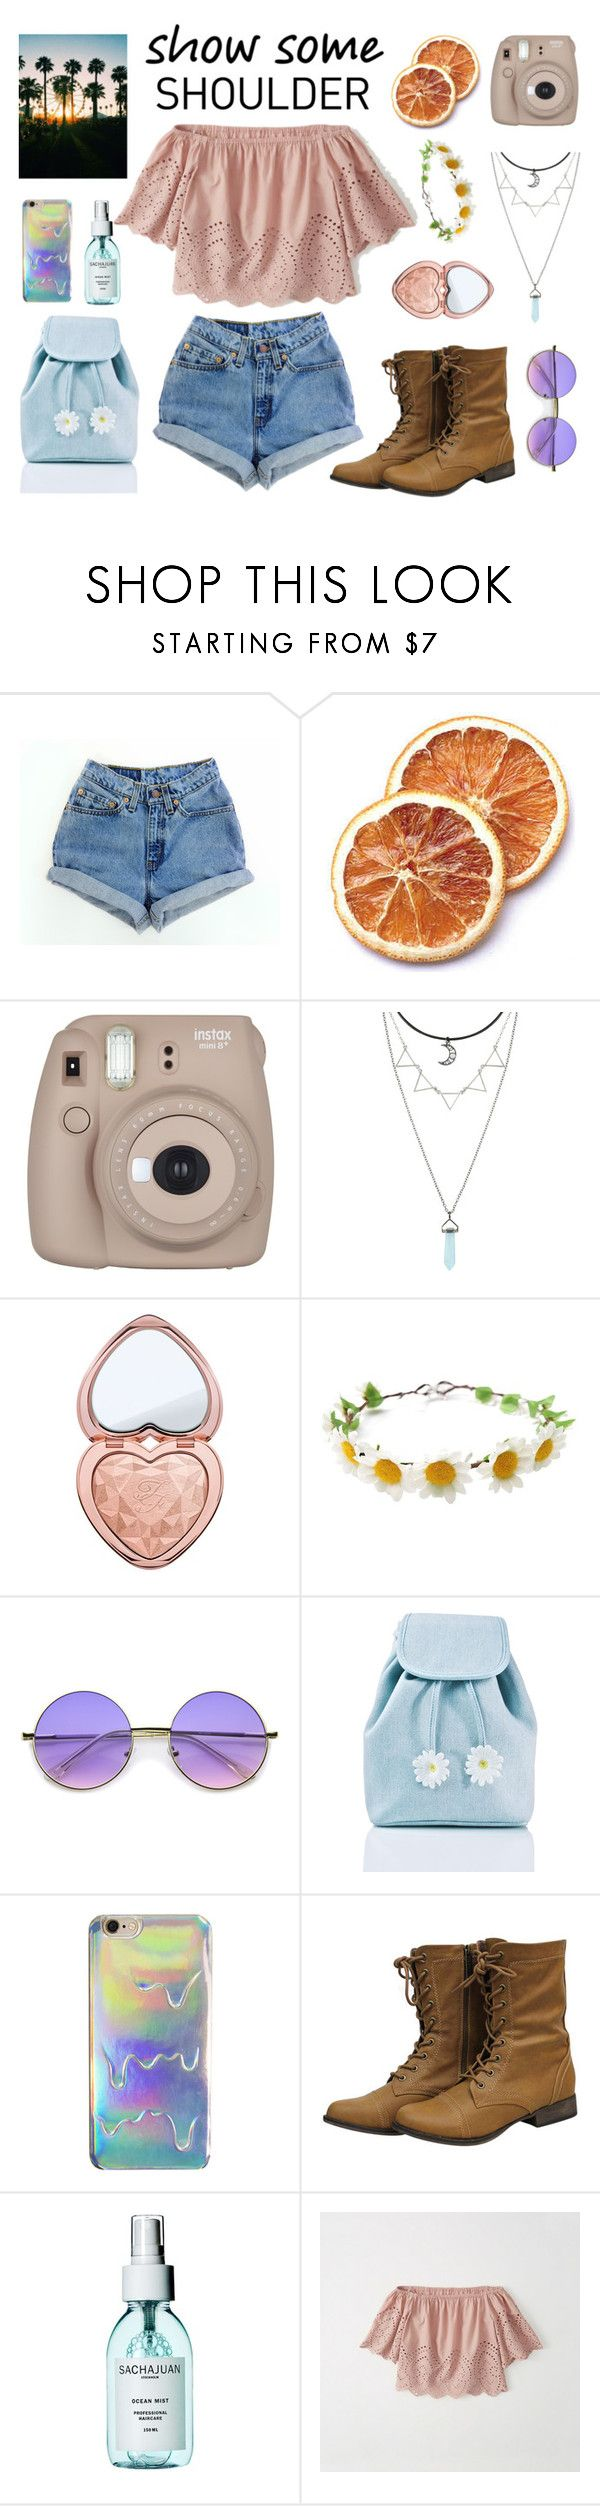 """Chella vibe"" by lanagur on Polyvore featuring мода, Levi's, Fujifilm, Too Faced Cosmetics, ZeroUV, Sugarbaby, Sachajuan и Abercrombie & Fitch"